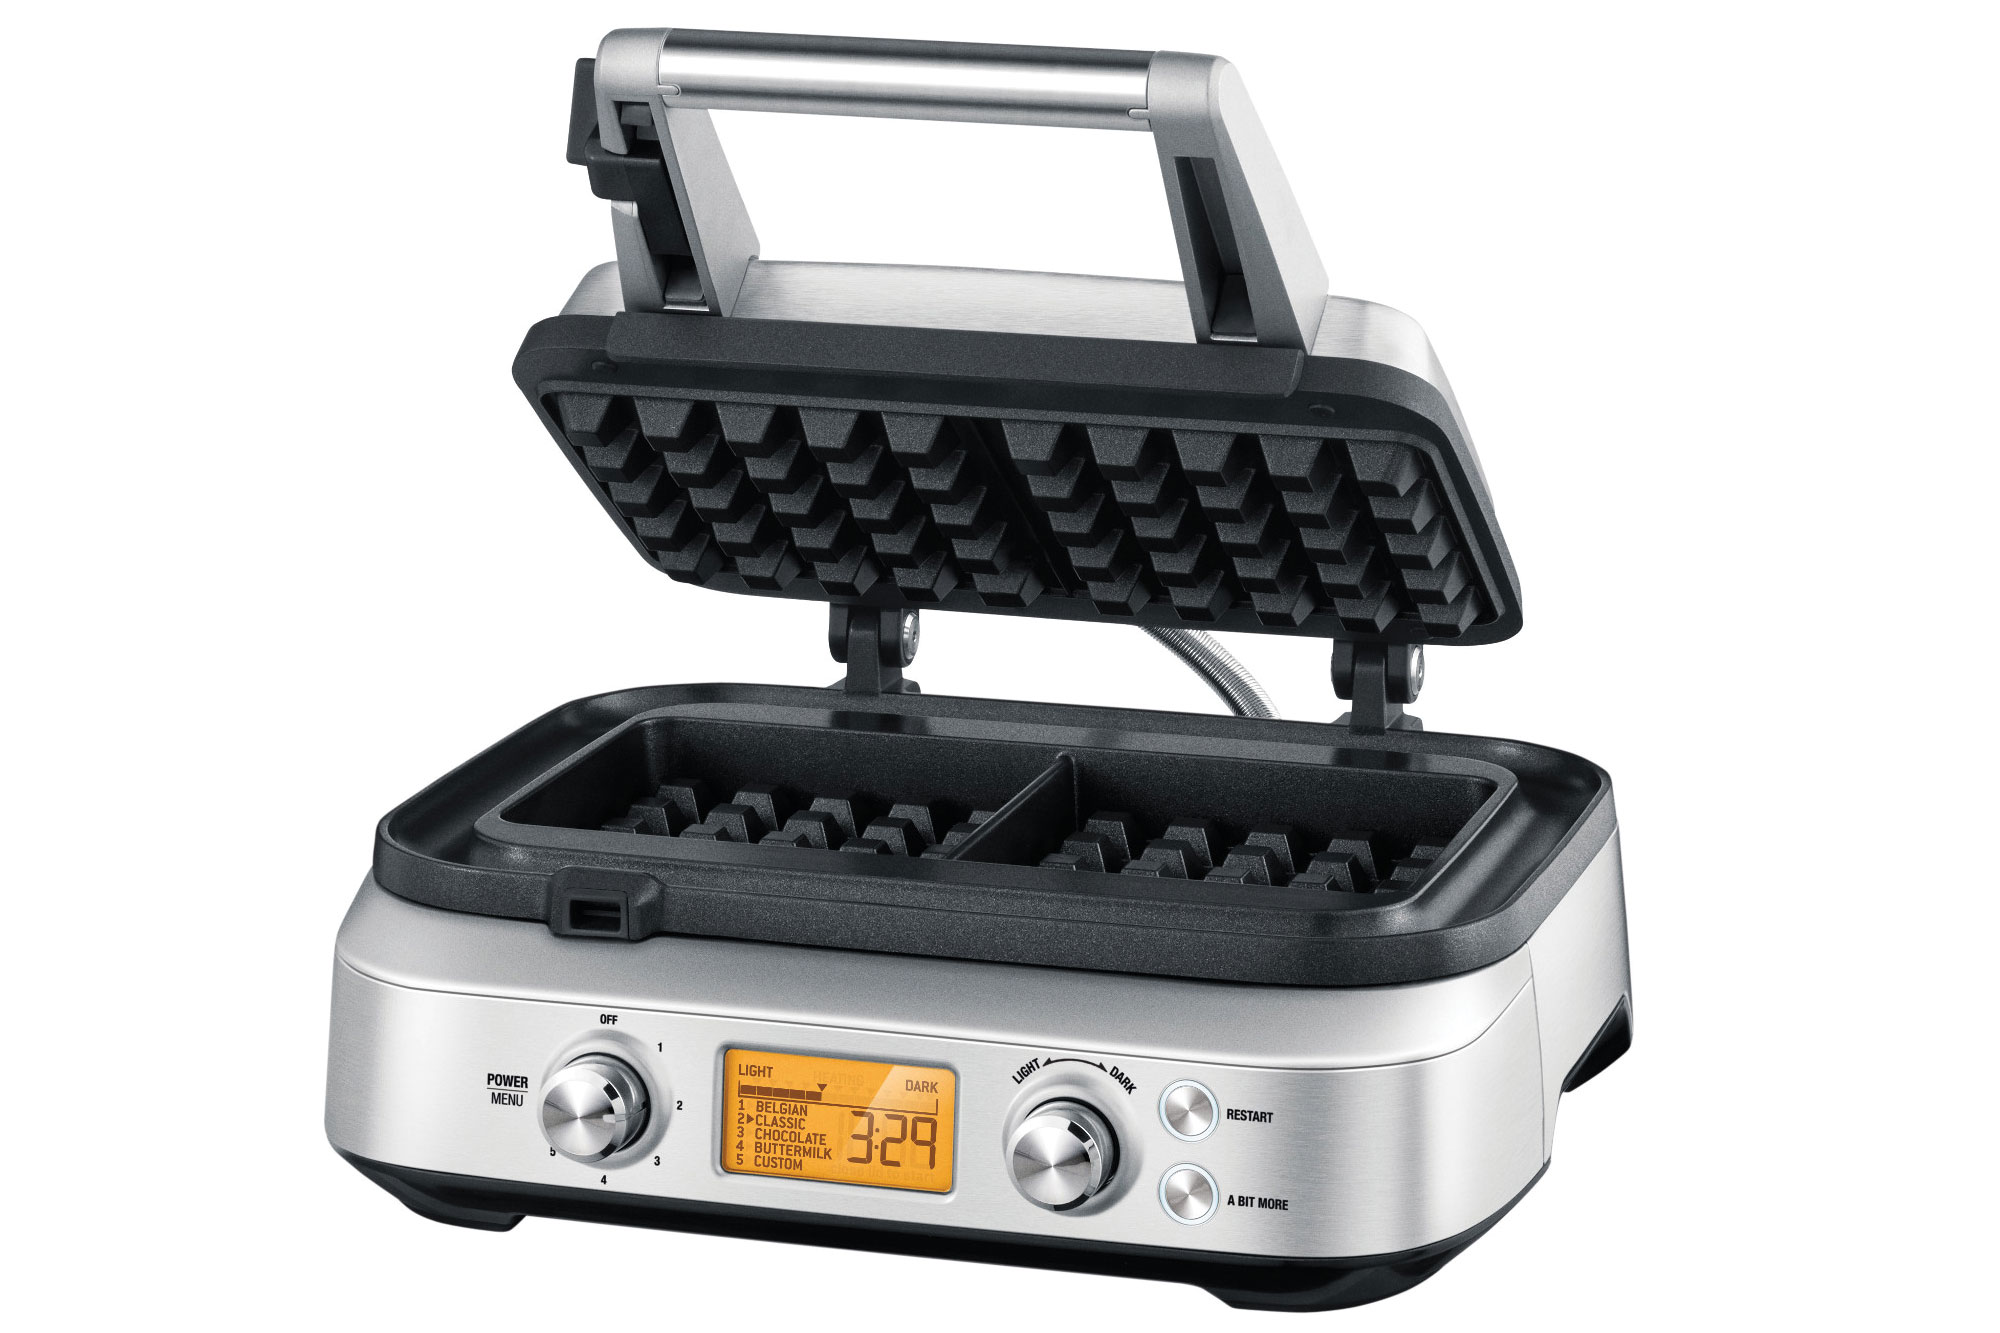 Breville Smart Waffle Maker 2 Slice Cutlery And More